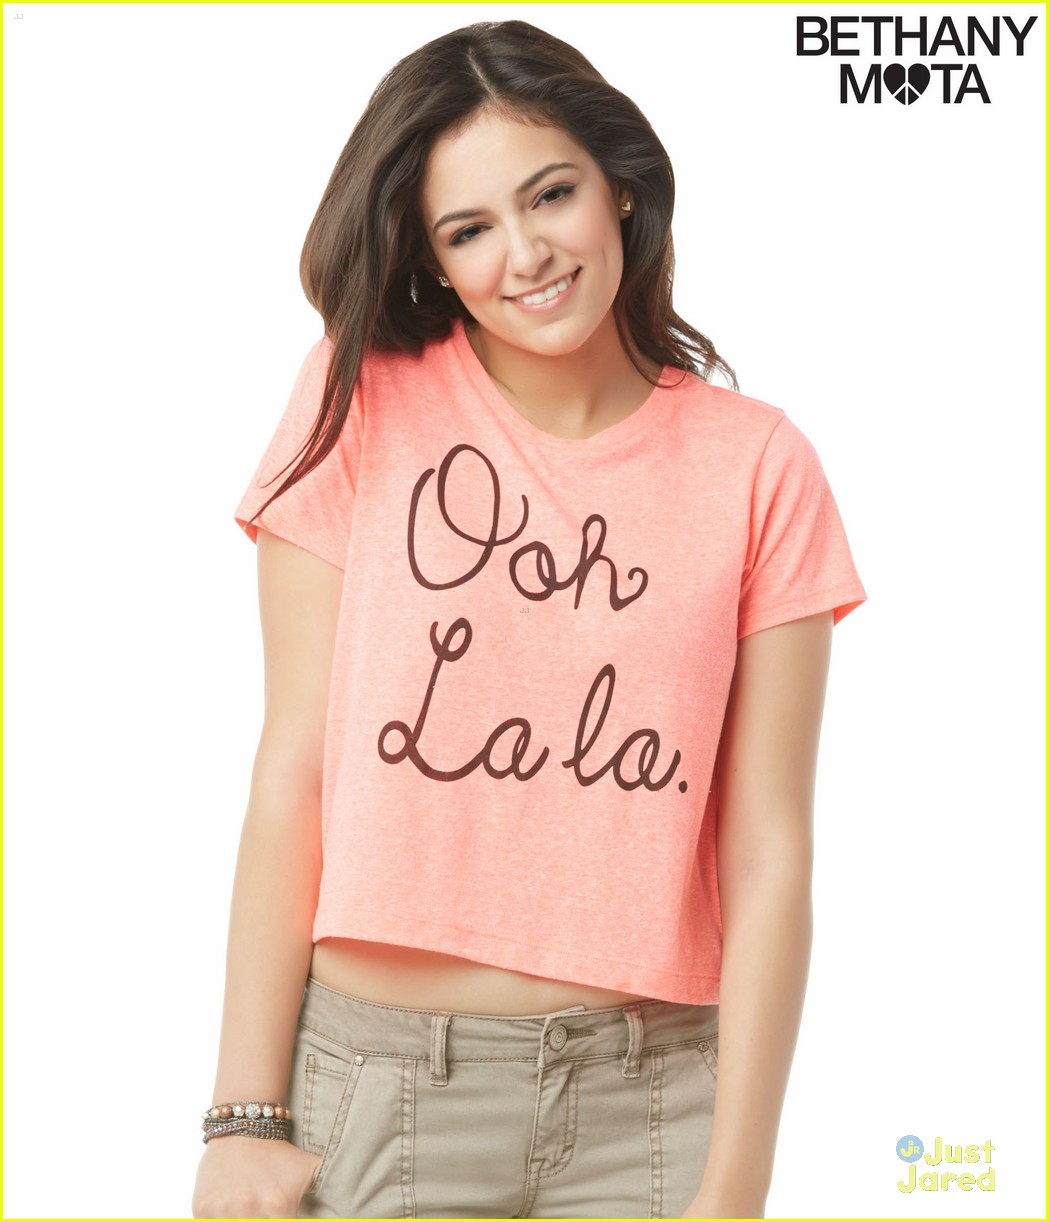 bethany mota meet and greet 2015 nfl